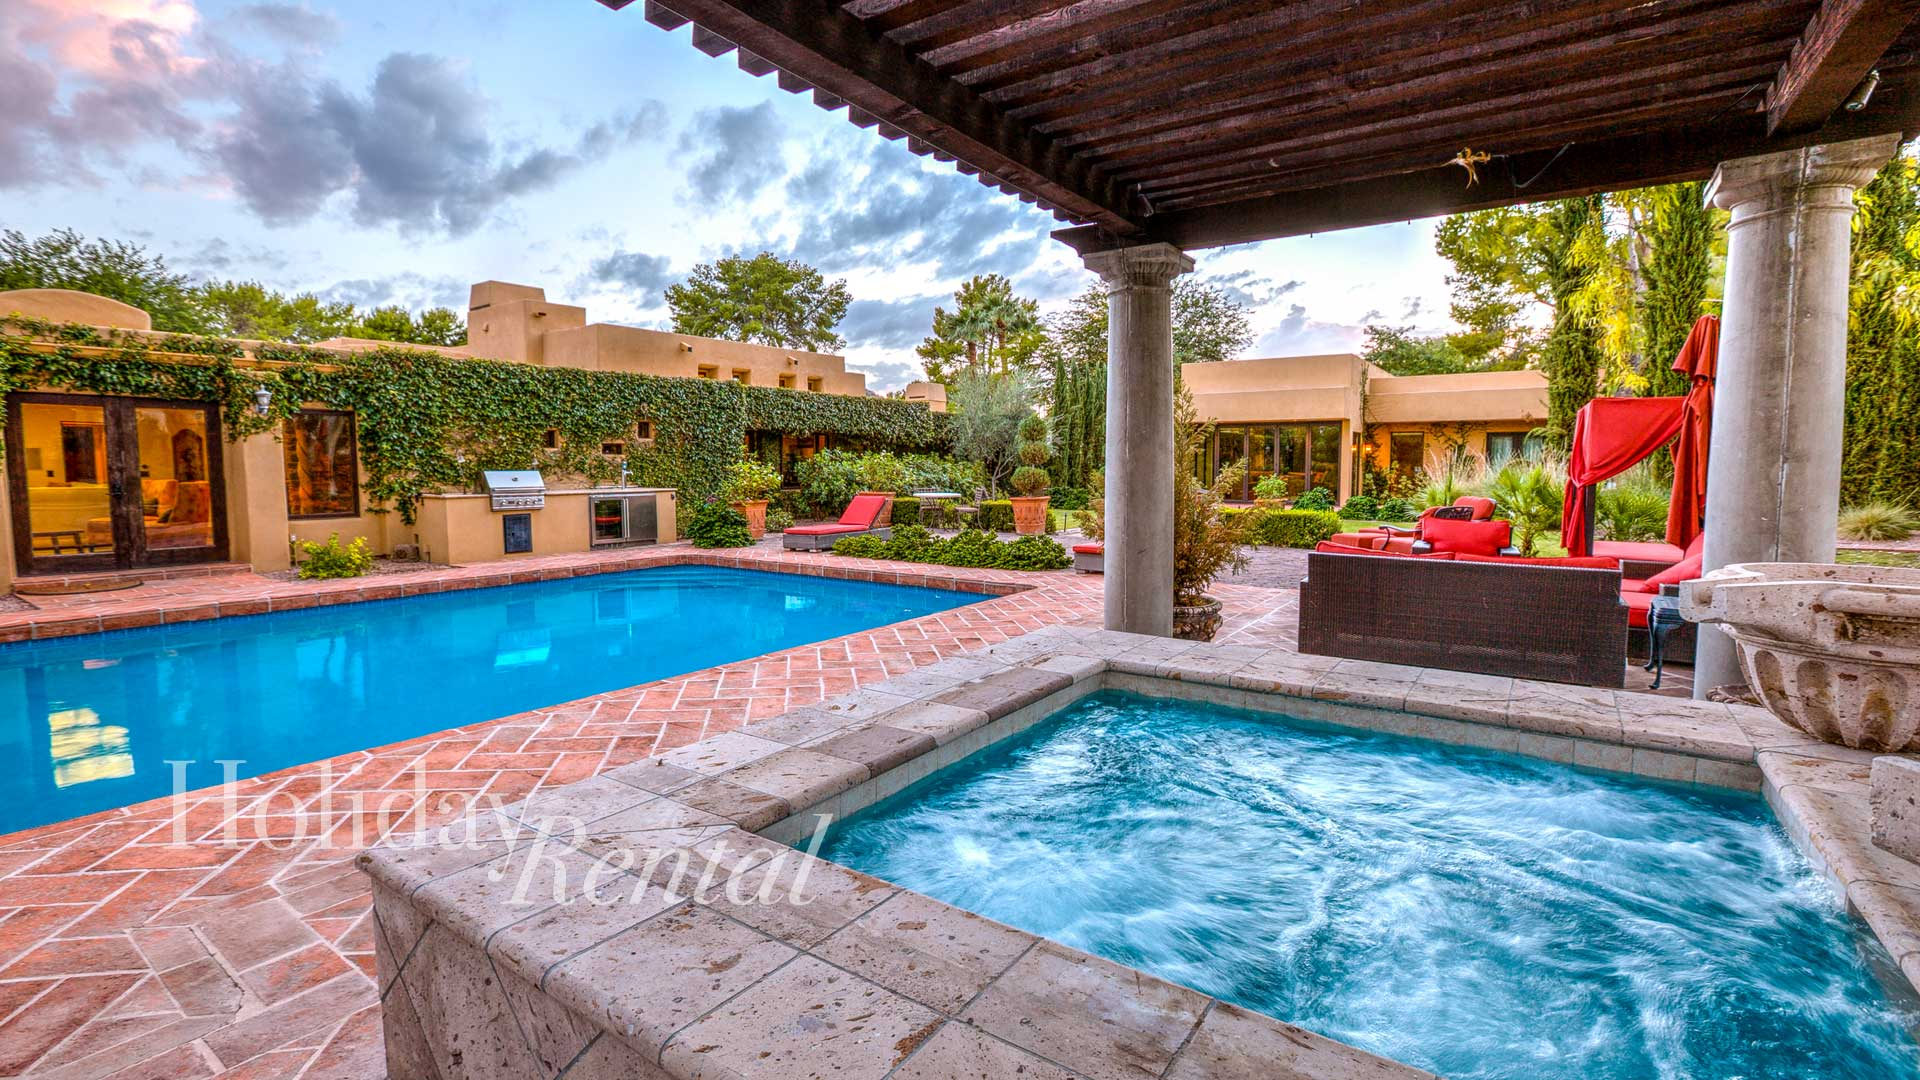 Great Outdoor Entertaining & Location! Includes Guest House, Maid service daily